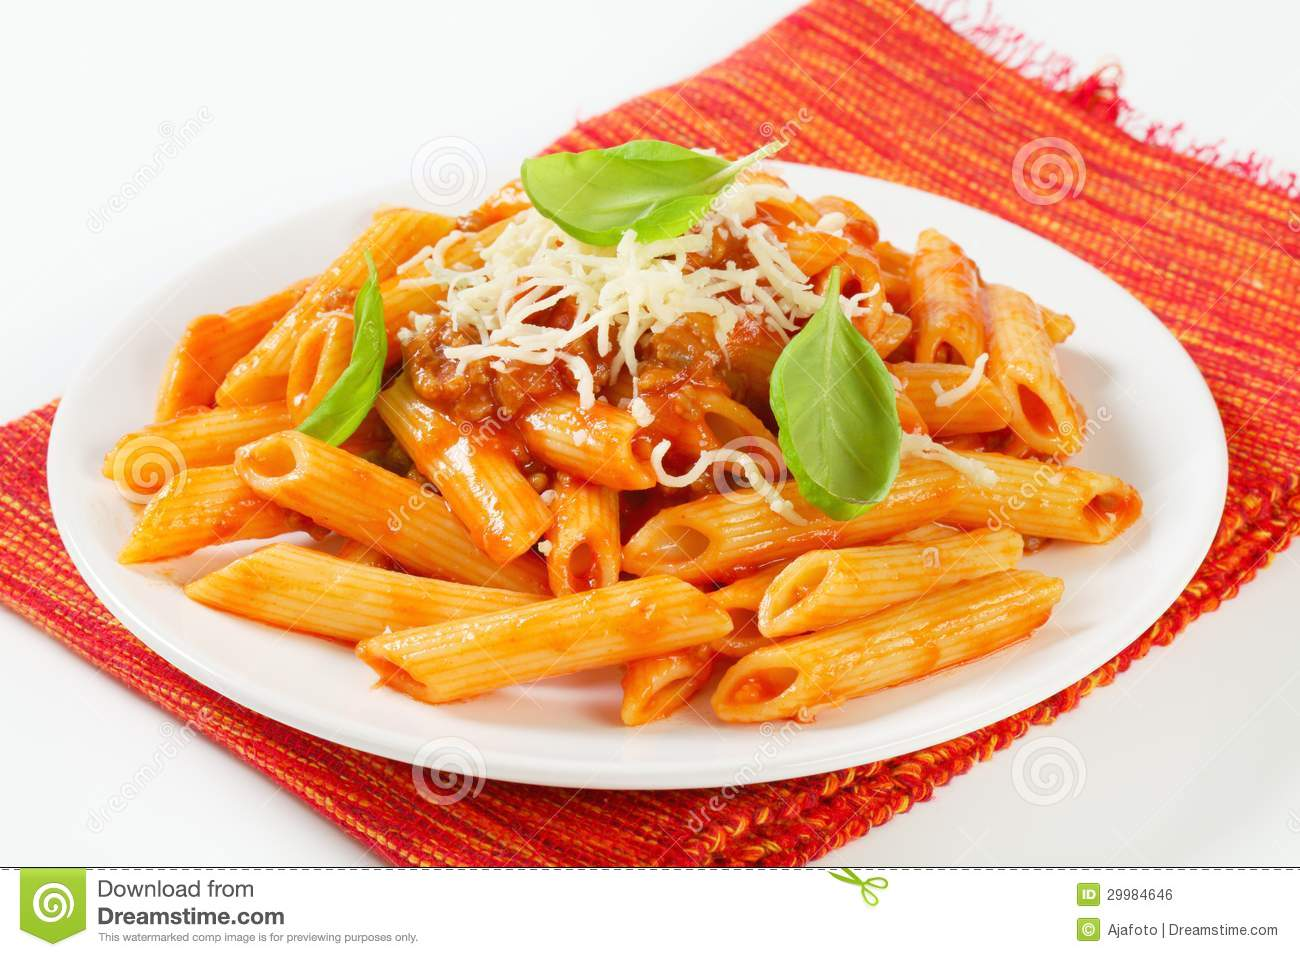 Penne With Meat Tomato Sauce Royalty Free Stock Image - Image ...